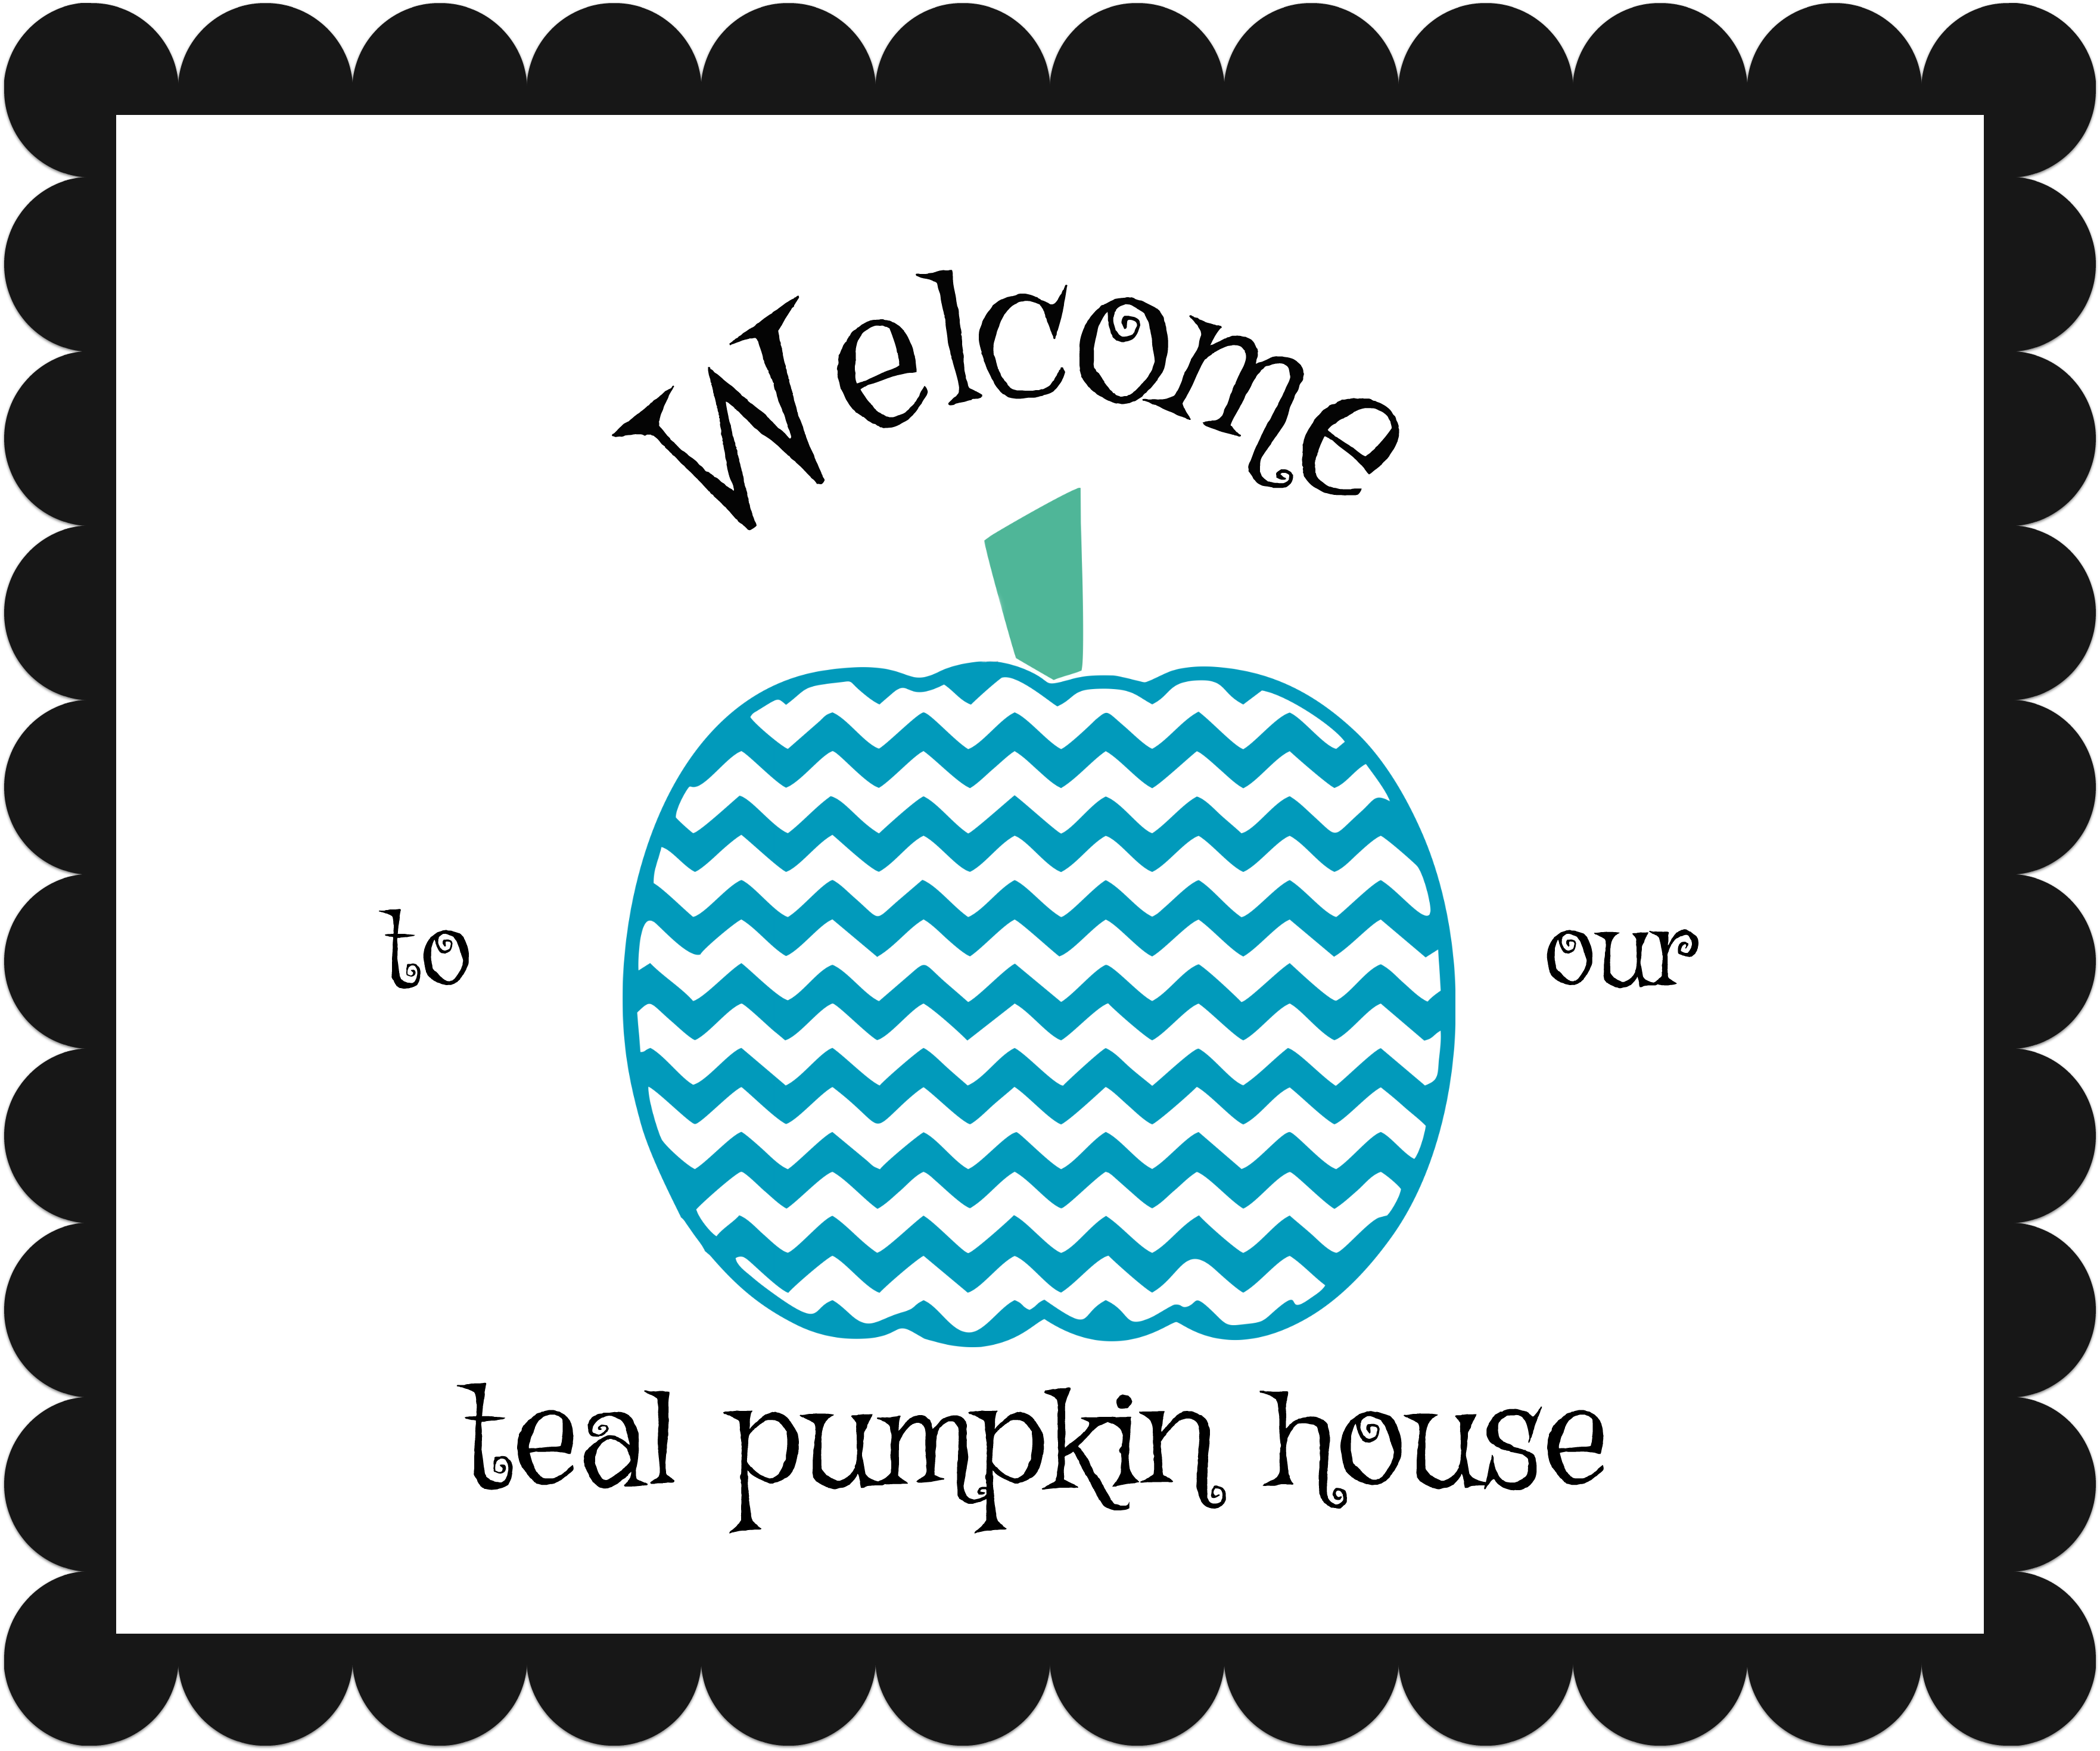 Teal pumpkin welcome sign for Halloween.